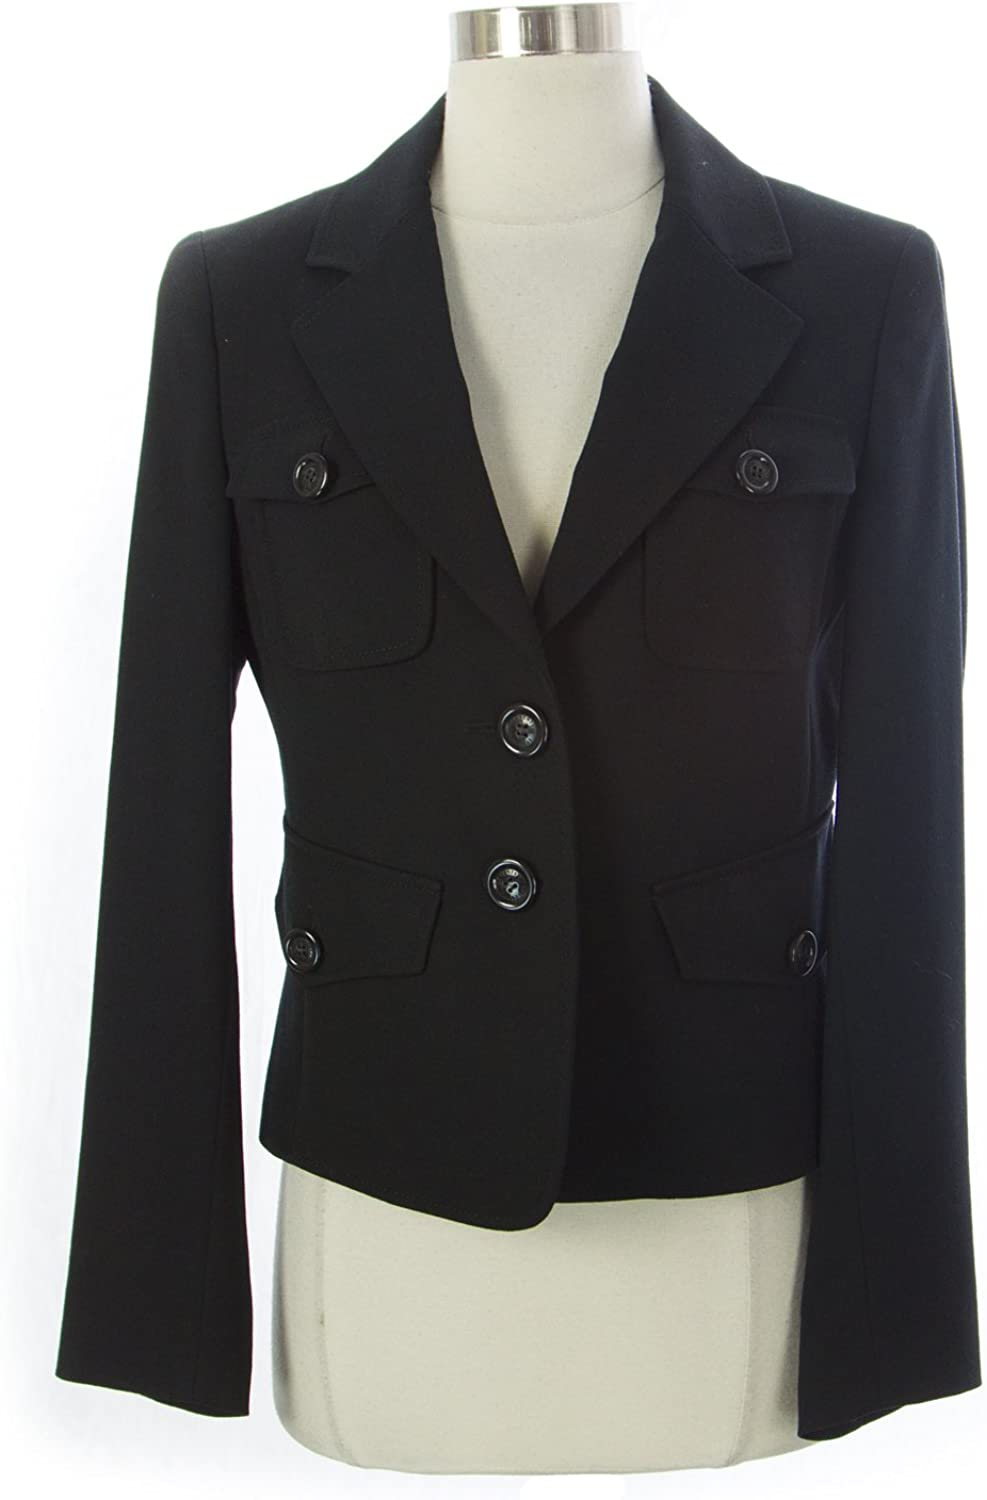 SEVENTY Women's Long Sleeve Blazer w Pockets IT 42 Black